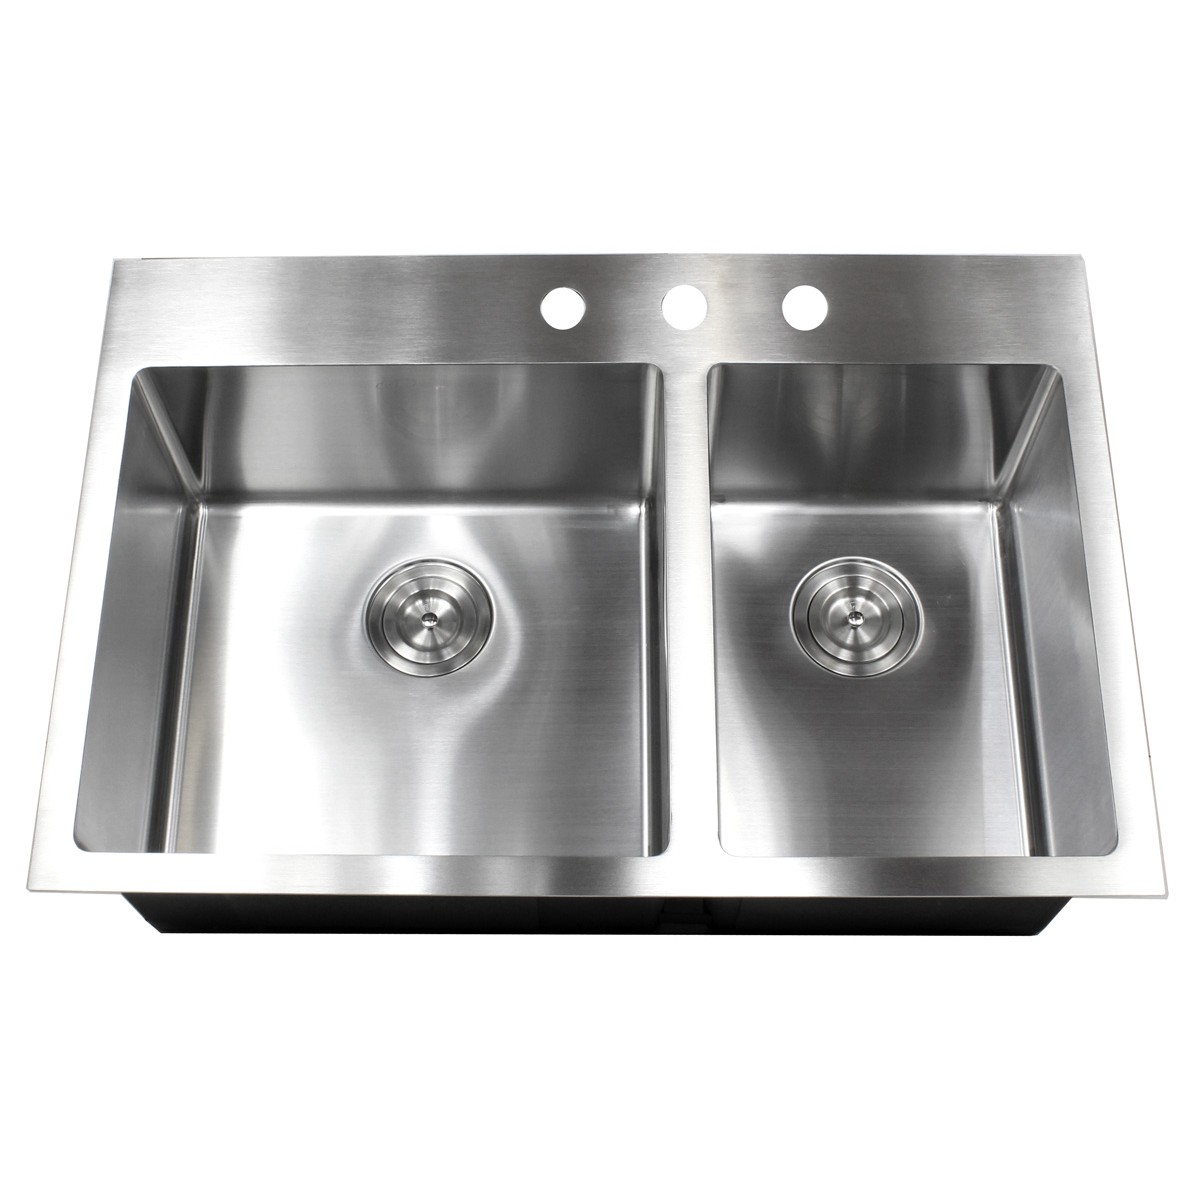 Stainless Steel Double Sink 33 Inch Top Mount Drop In Stainless Steel Double Bowl